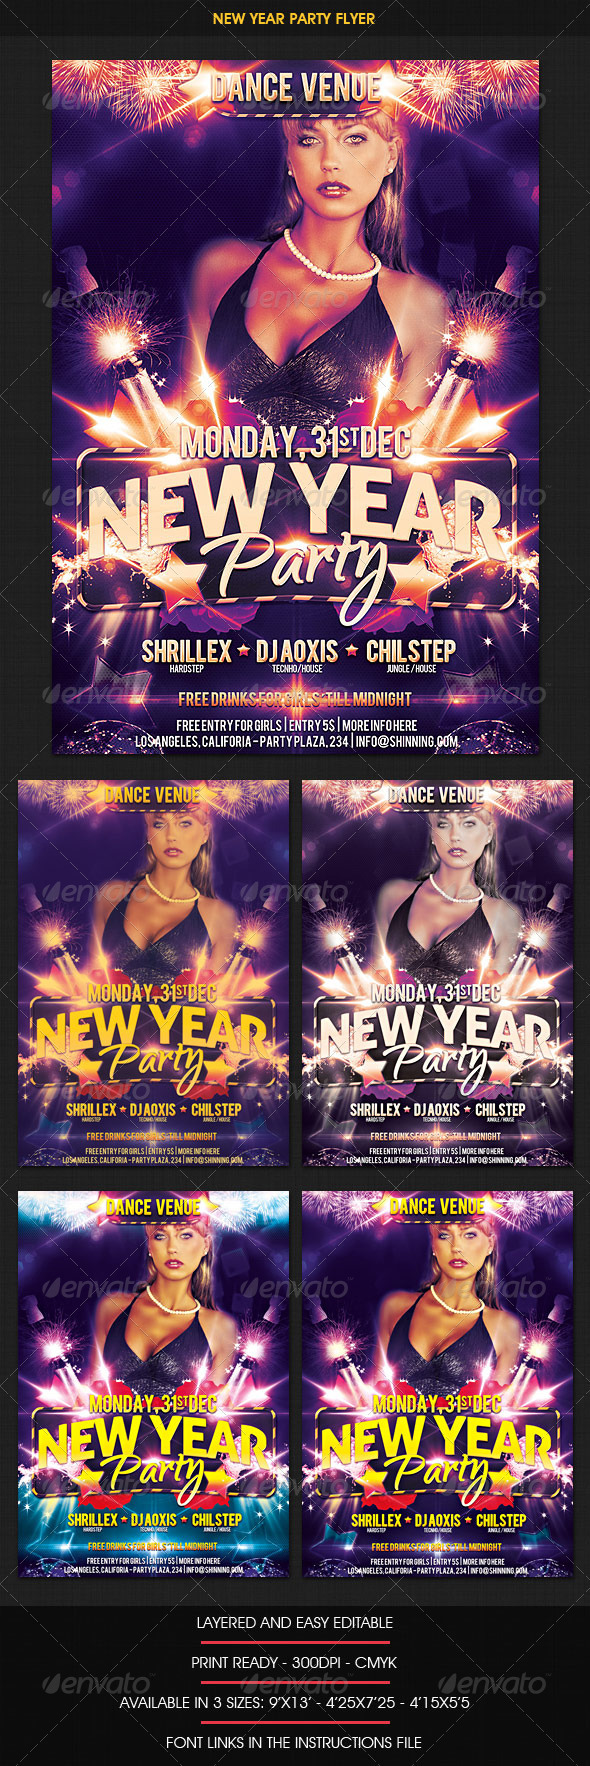 New Year Dance Party Flyer - Clubs & Parties Events